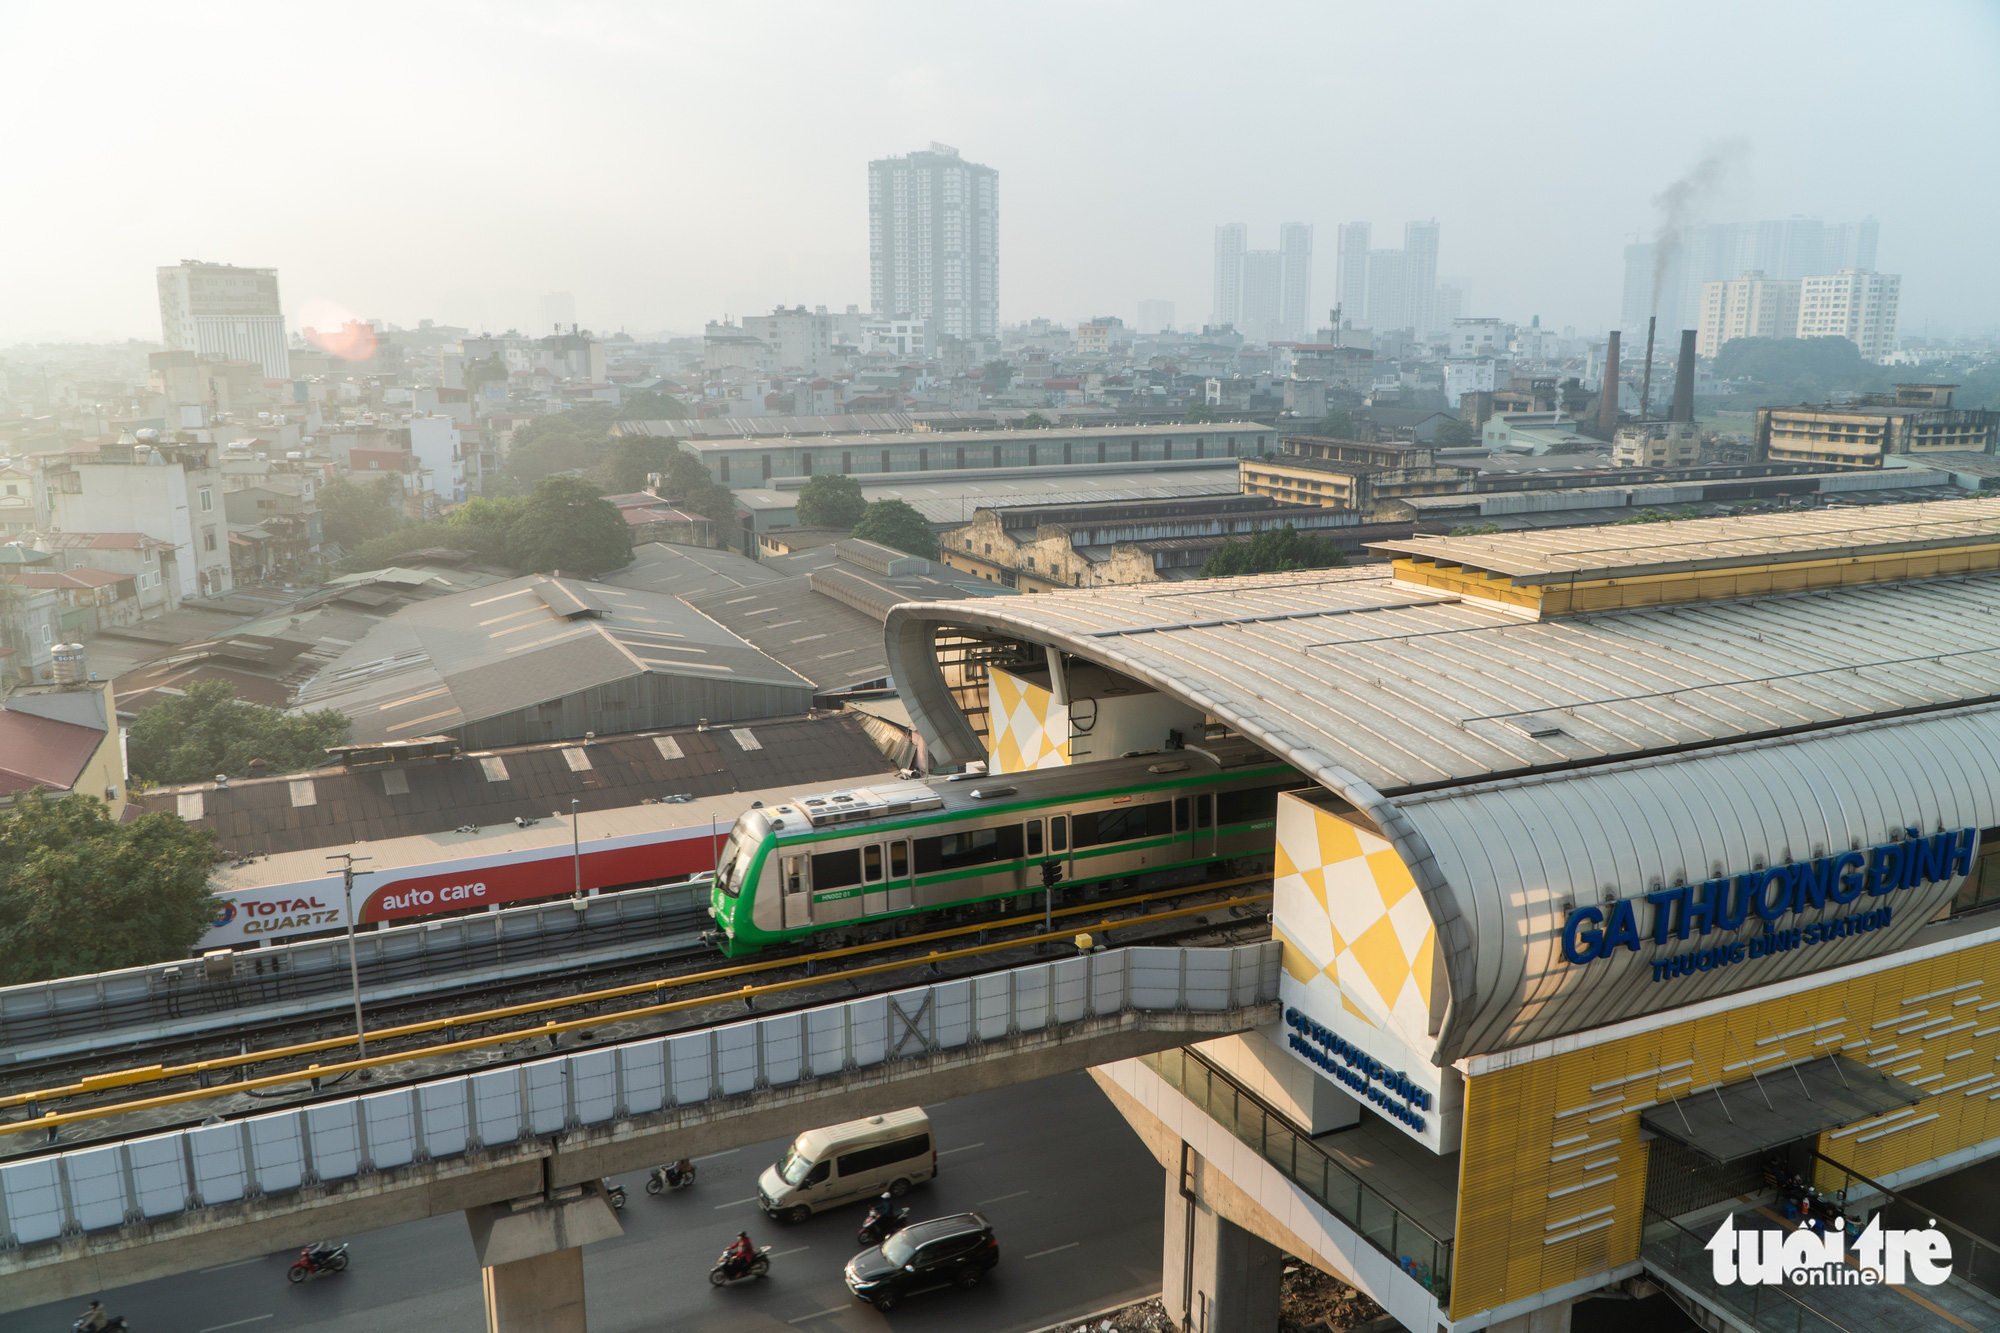 A train arrives at Thuong Dinh Station along the Cat Linh-Ha Dong urban railway line in Hanoi, December 12, 2020. Photo: Pham Tuan / Tuoi Tre